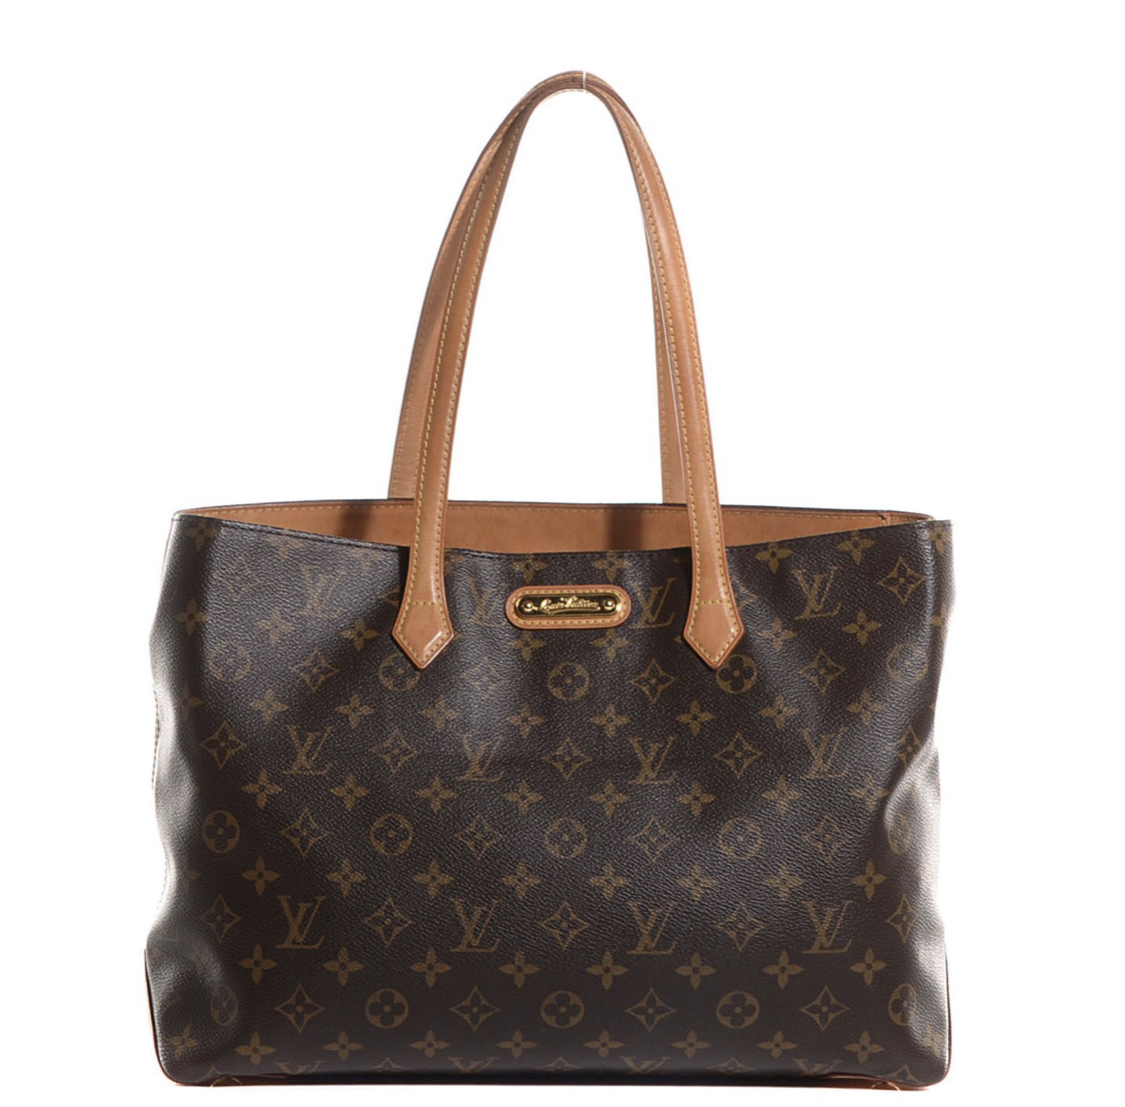 Louis Vuitton Wilshire MM, Brown, Size: .LV<br /> Very good condition. Water spots on leather. Spectacular bag!